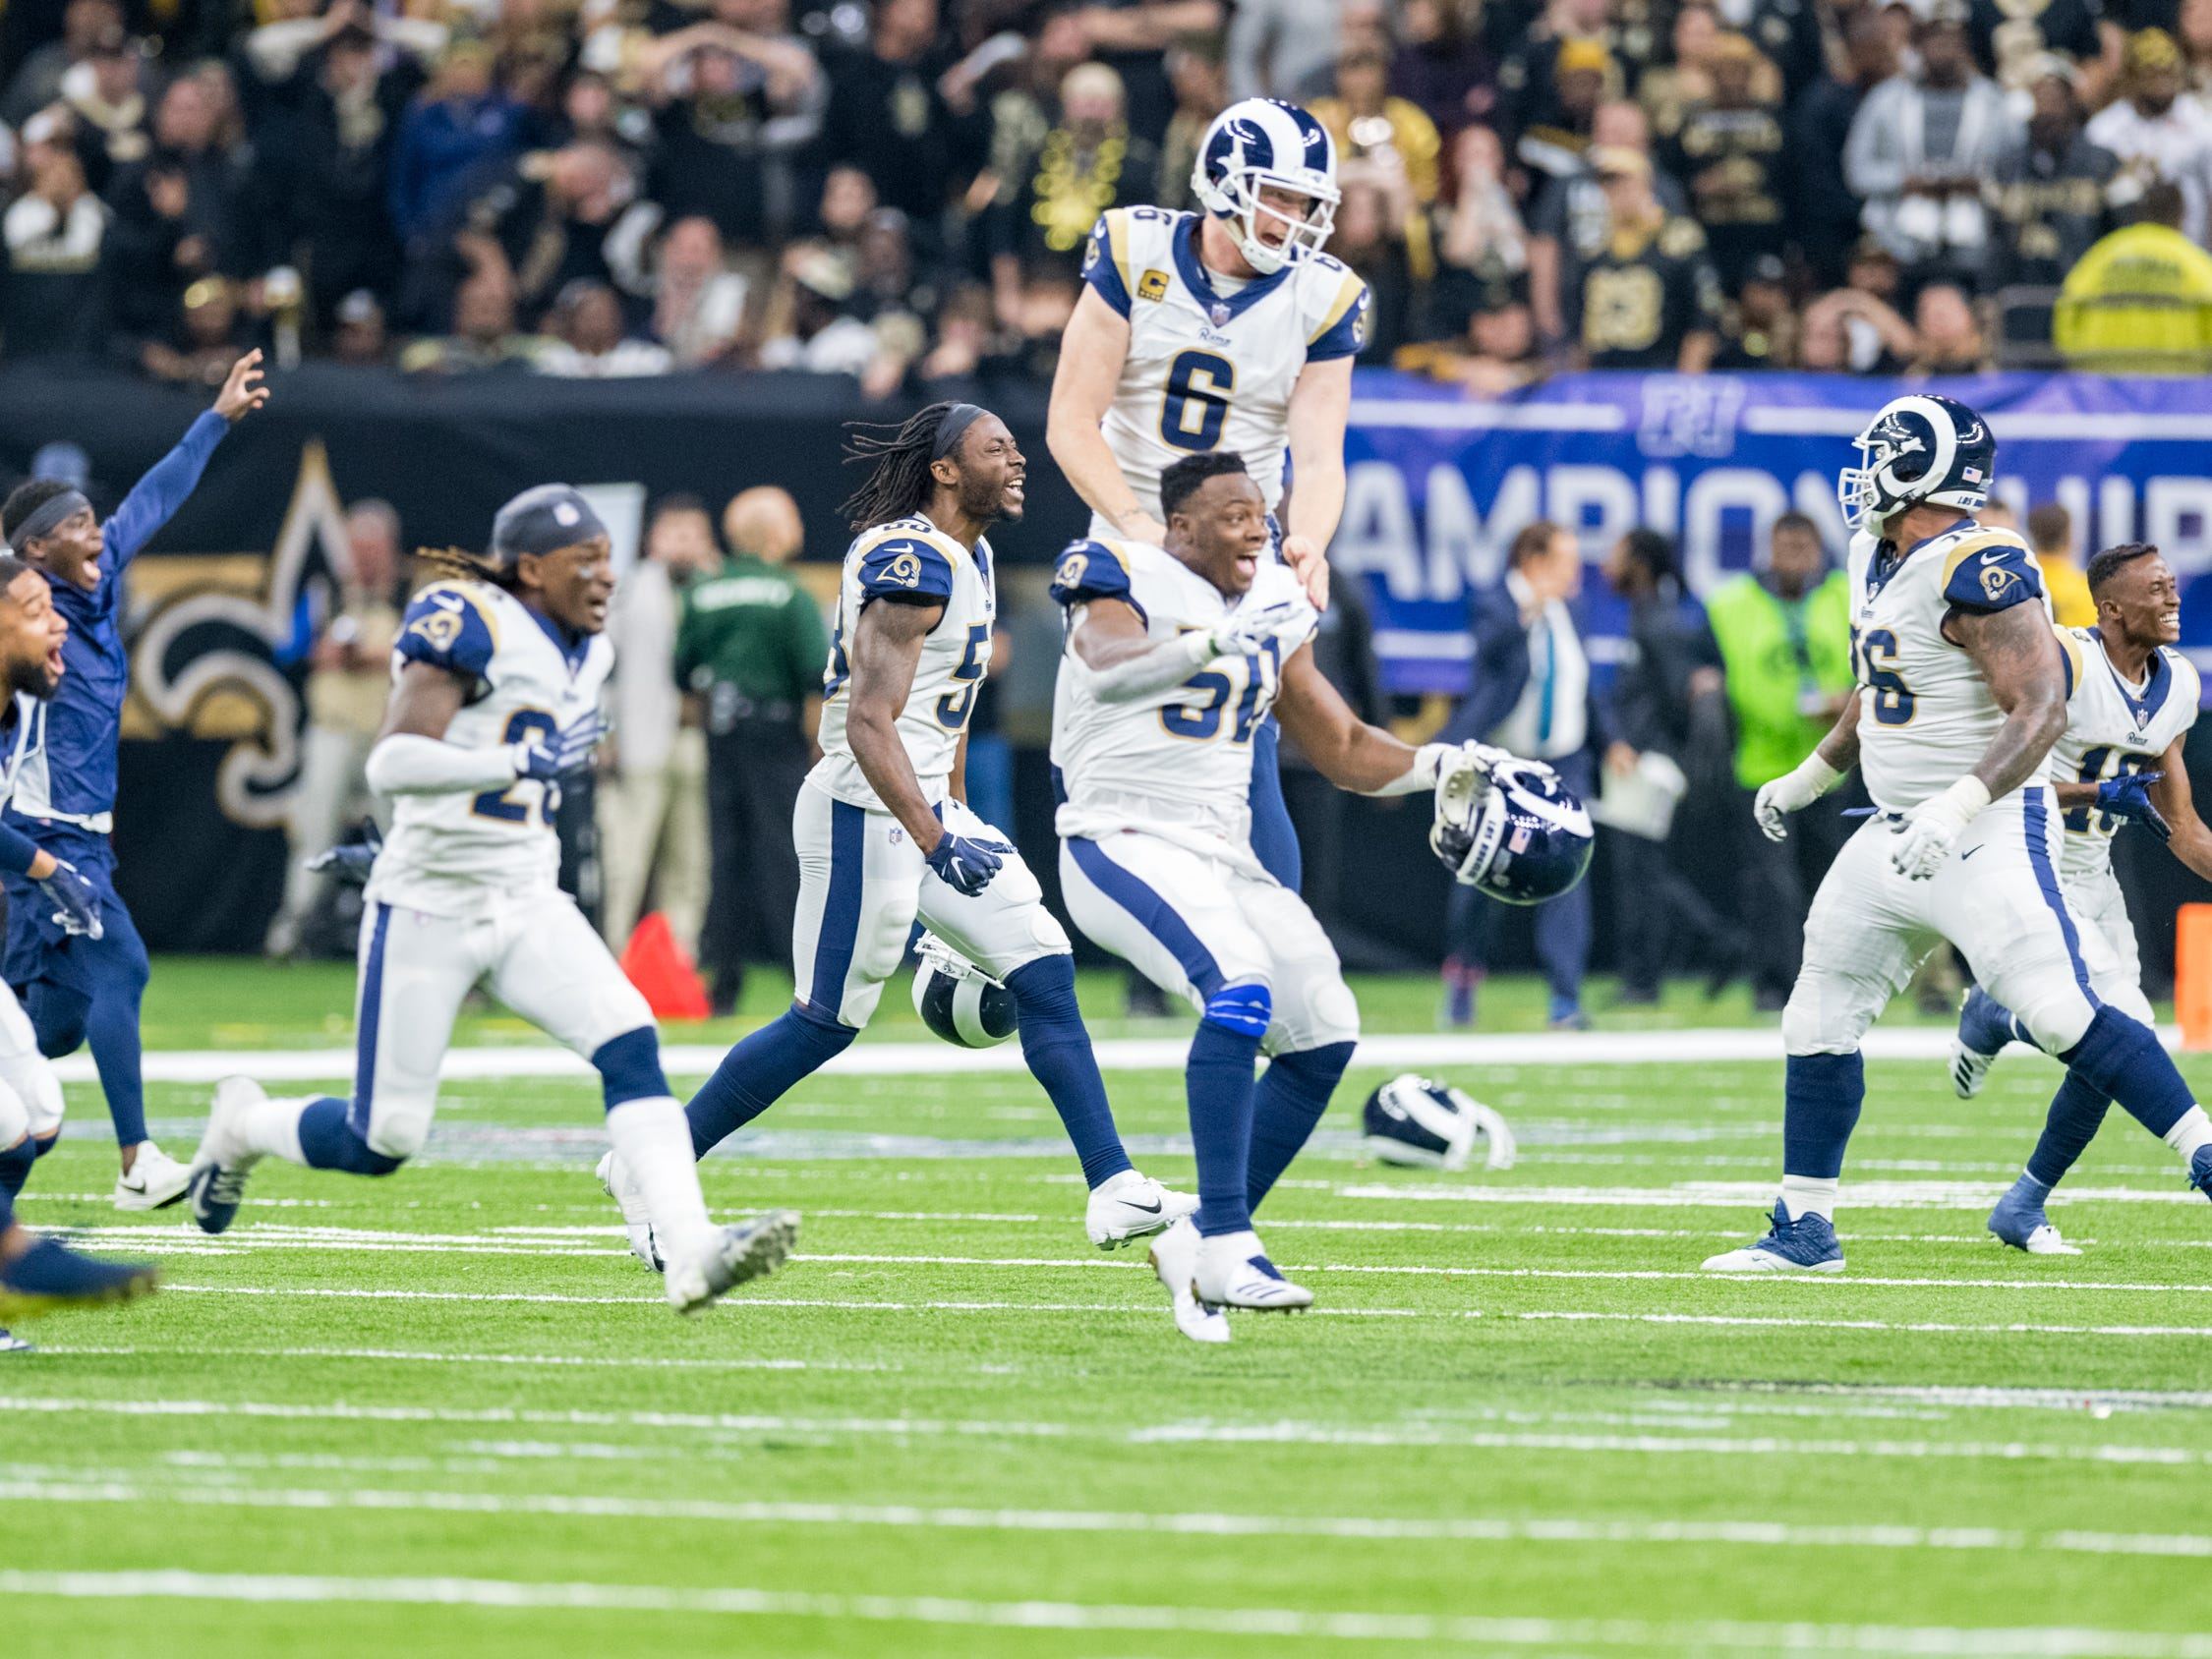 Rams players react after Greg Zuerlein field goal in overtime to win the NFC Championship playoff football game between the New Orleans Saints and the Los Angeles Rams at the Mercedes-Benz Superdome in New Orleans. Sunday, Jan. 20, 2019.